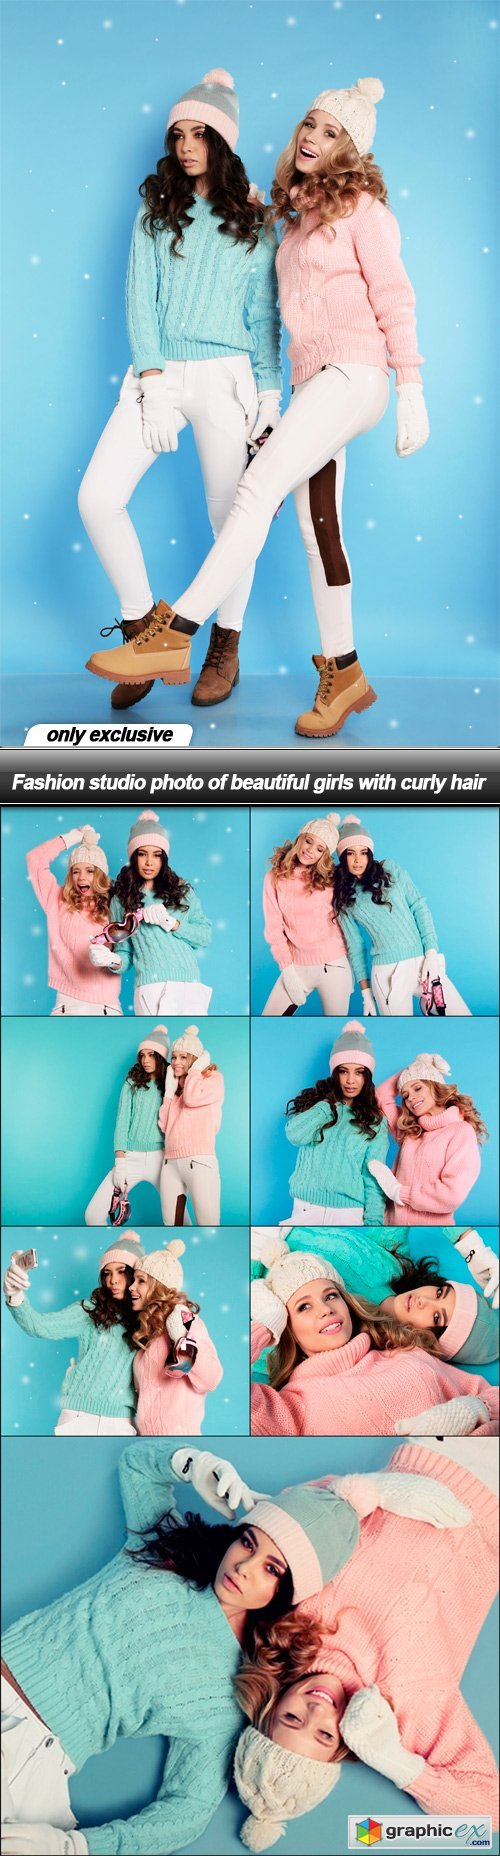 Fashion studio photo of beautiful girls with curly hair - 8 UHQ JPEG